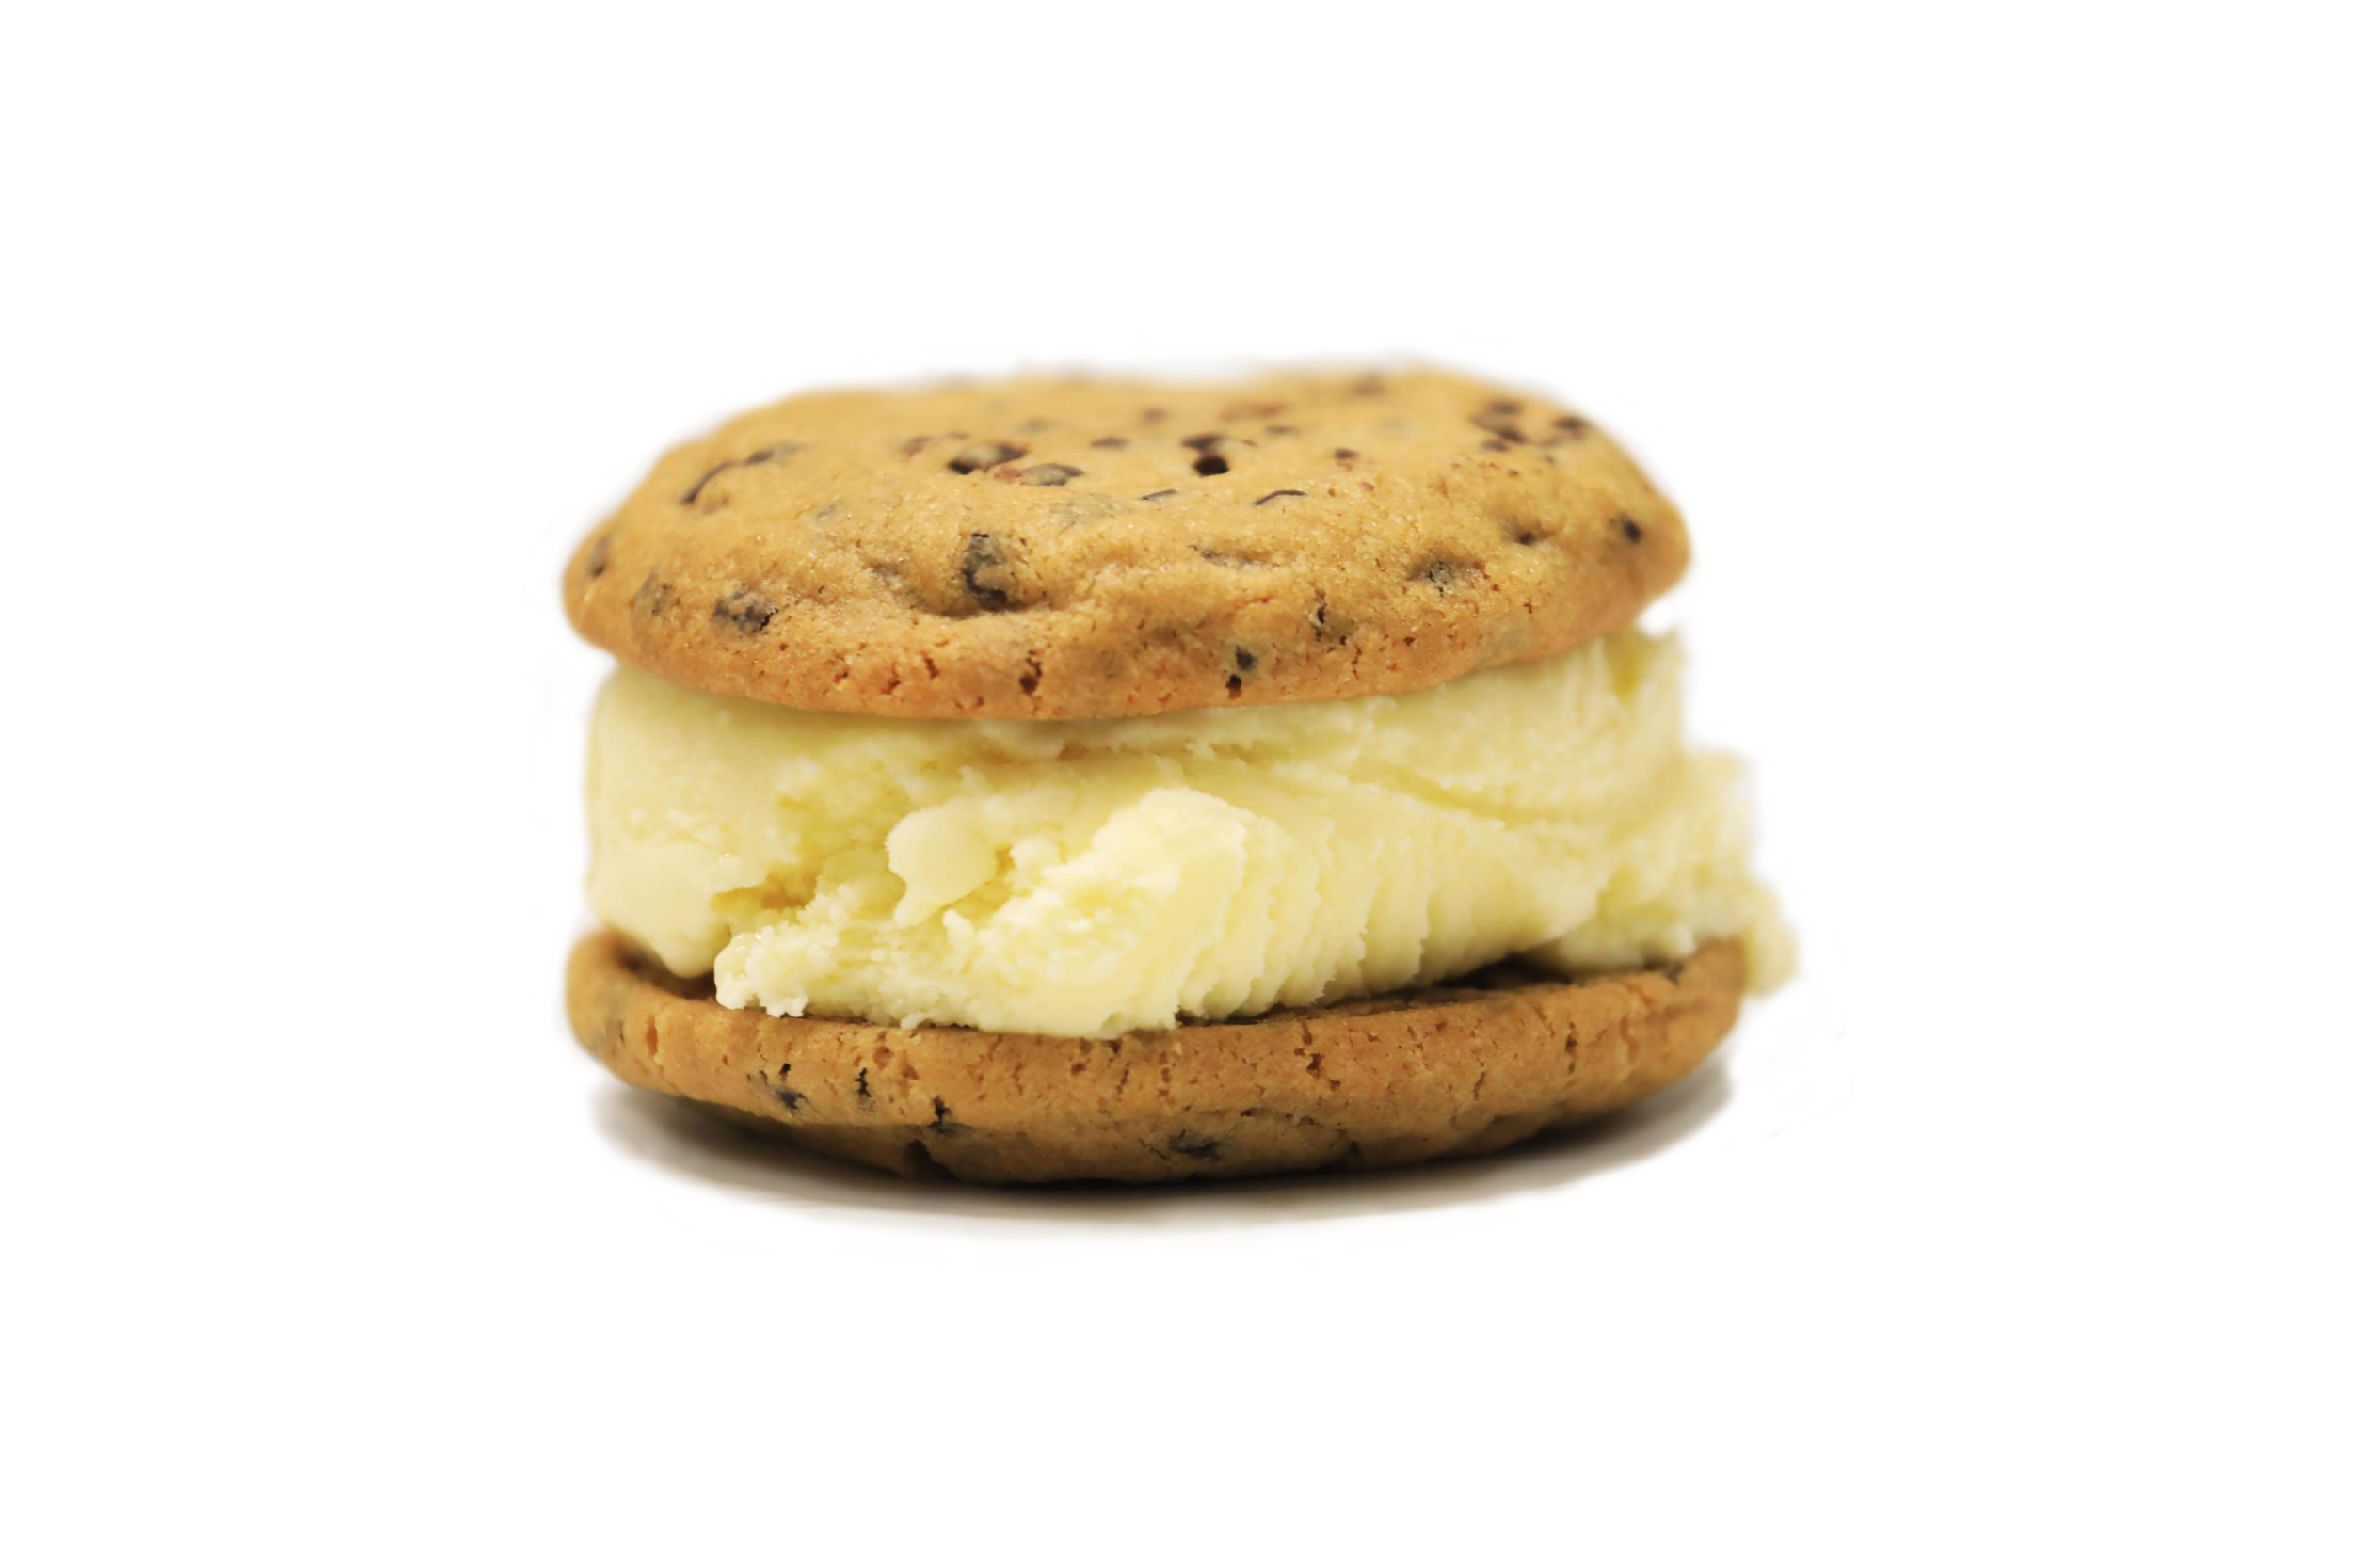 THE CLASSIC : Classic vanilla ice cream between two chocolate chip cookies